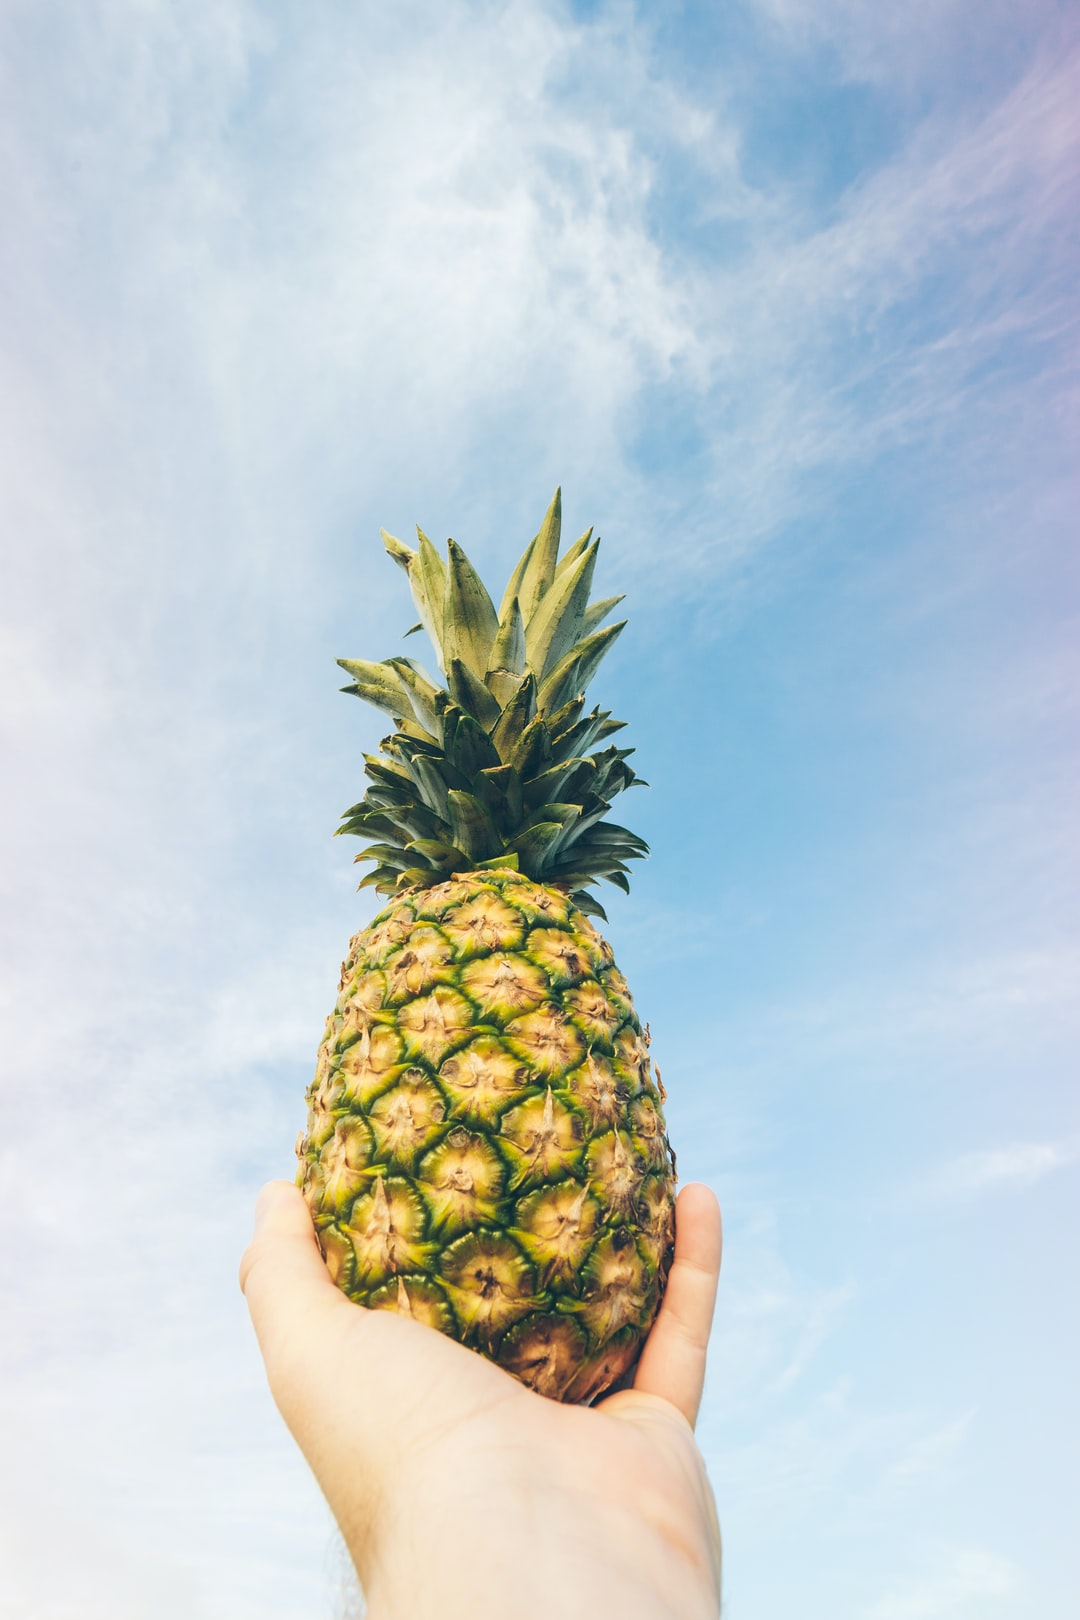 pineapple held up to the sky